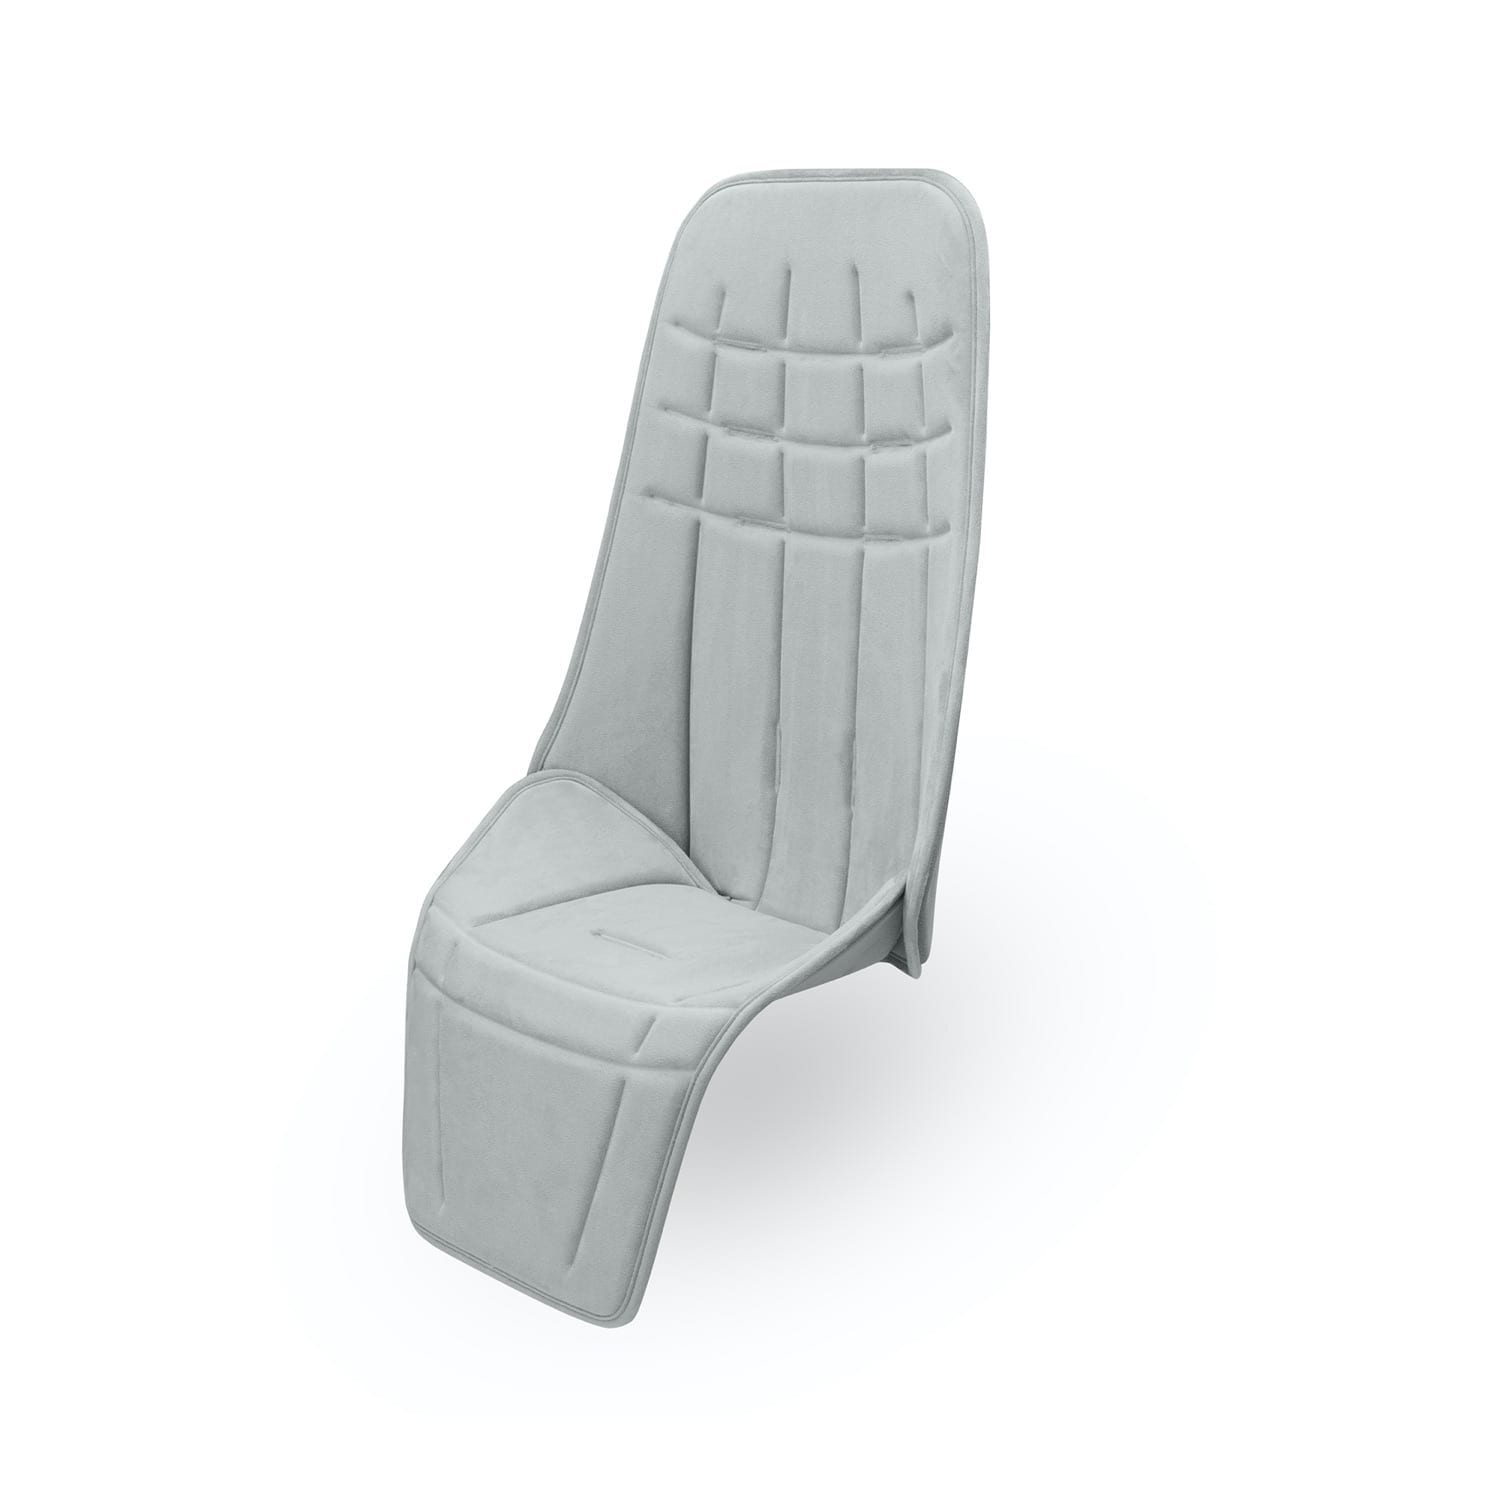 Quinny Hubb Luxurious Seat Liner – Grey product image